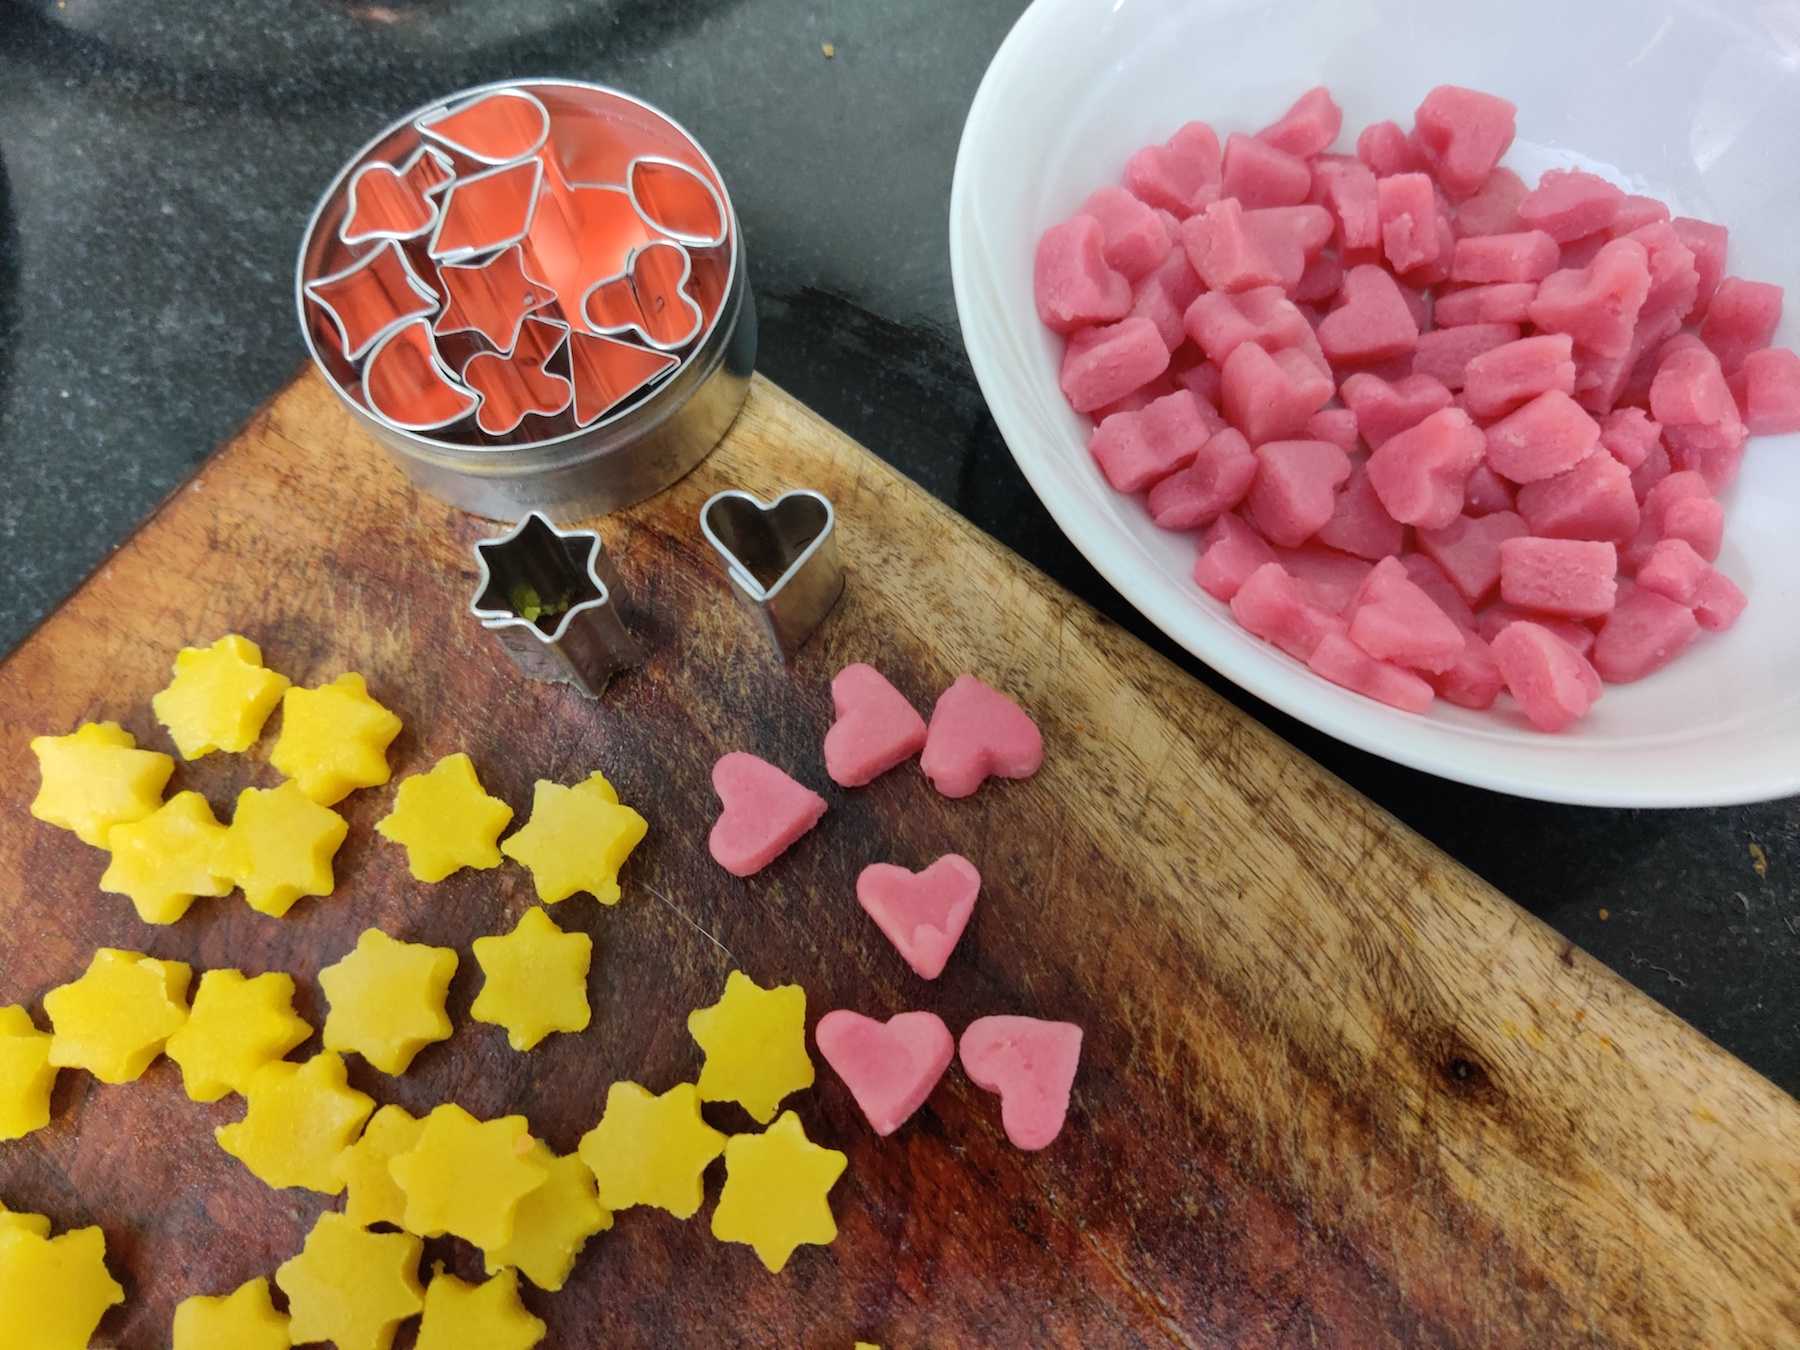 Marzipan shaped with tiny cutters